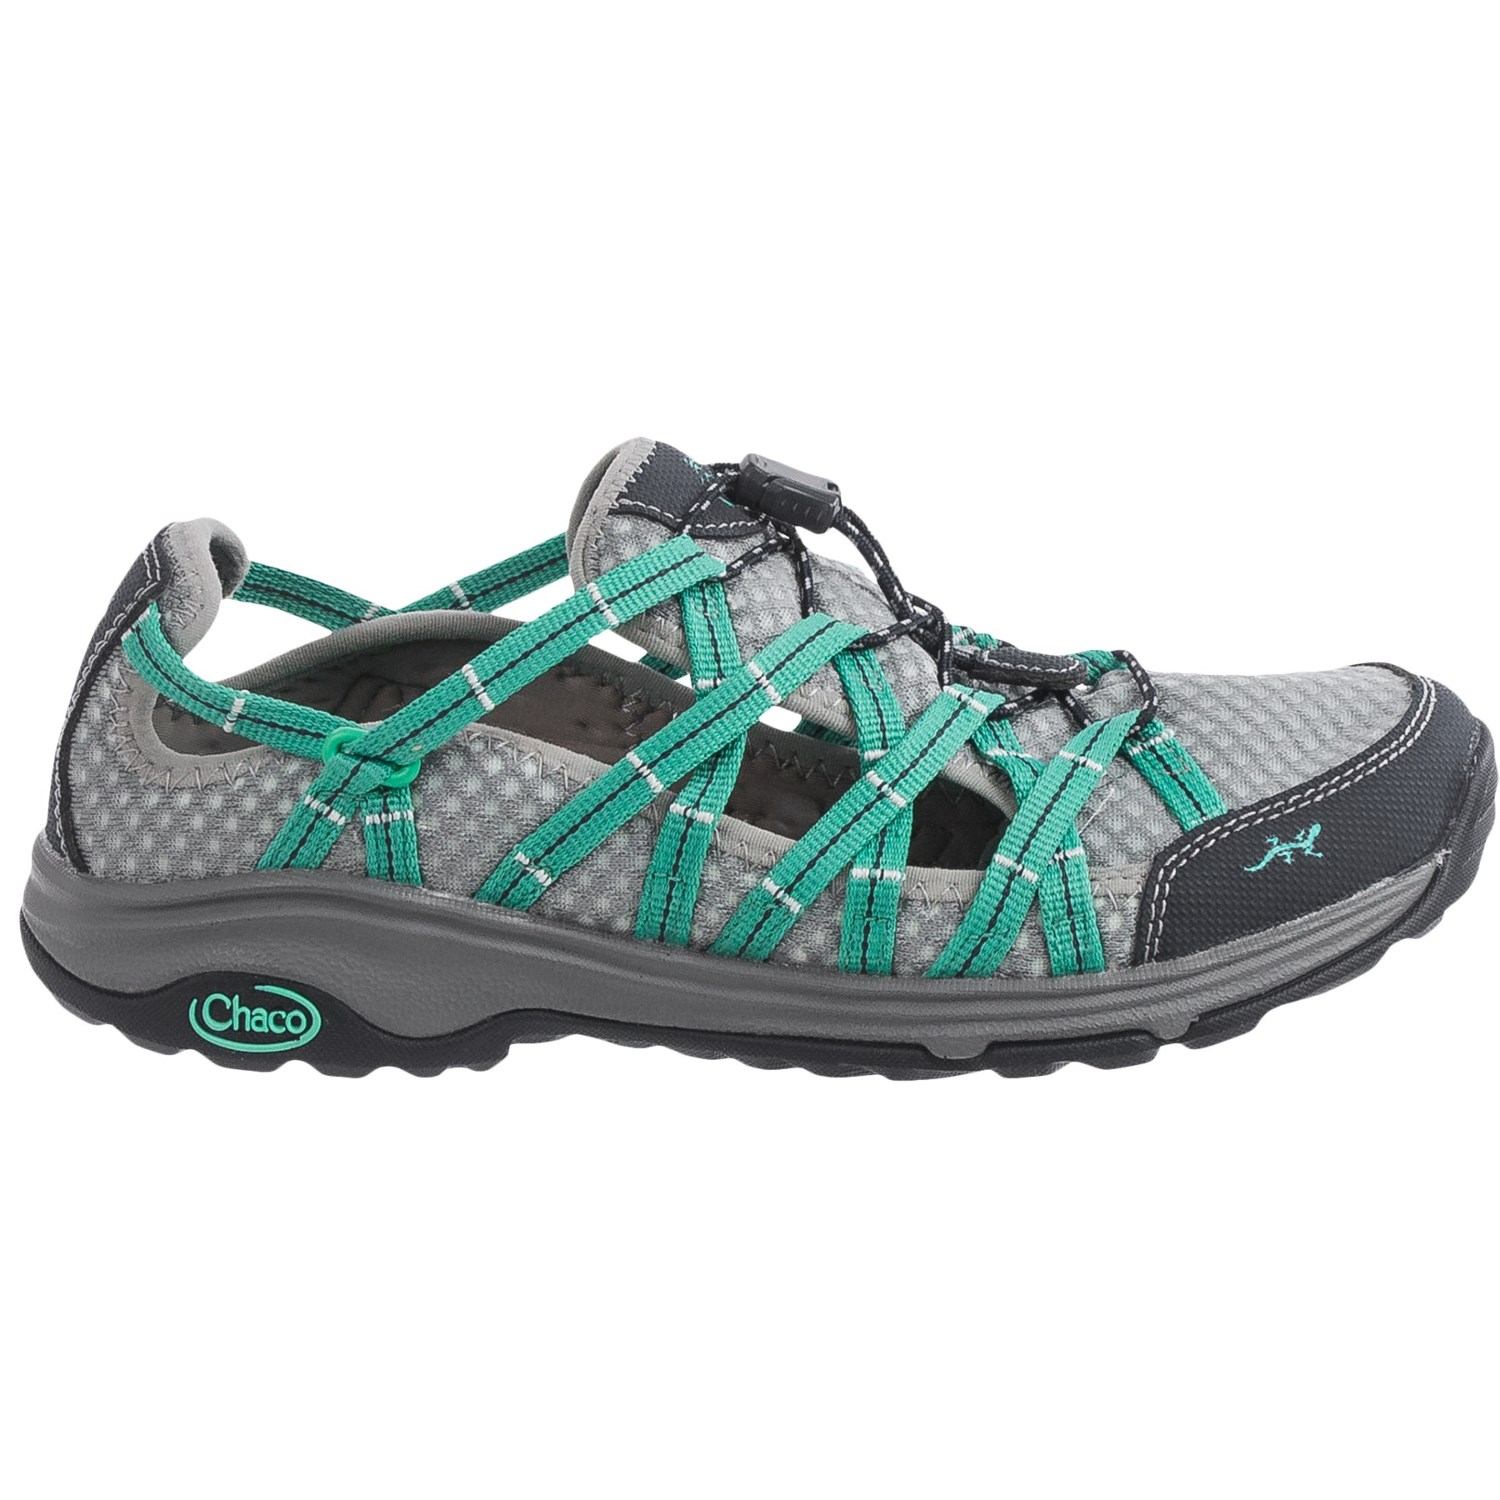 Chaco Outcross Evo Free Water Shoes For Women Save 45